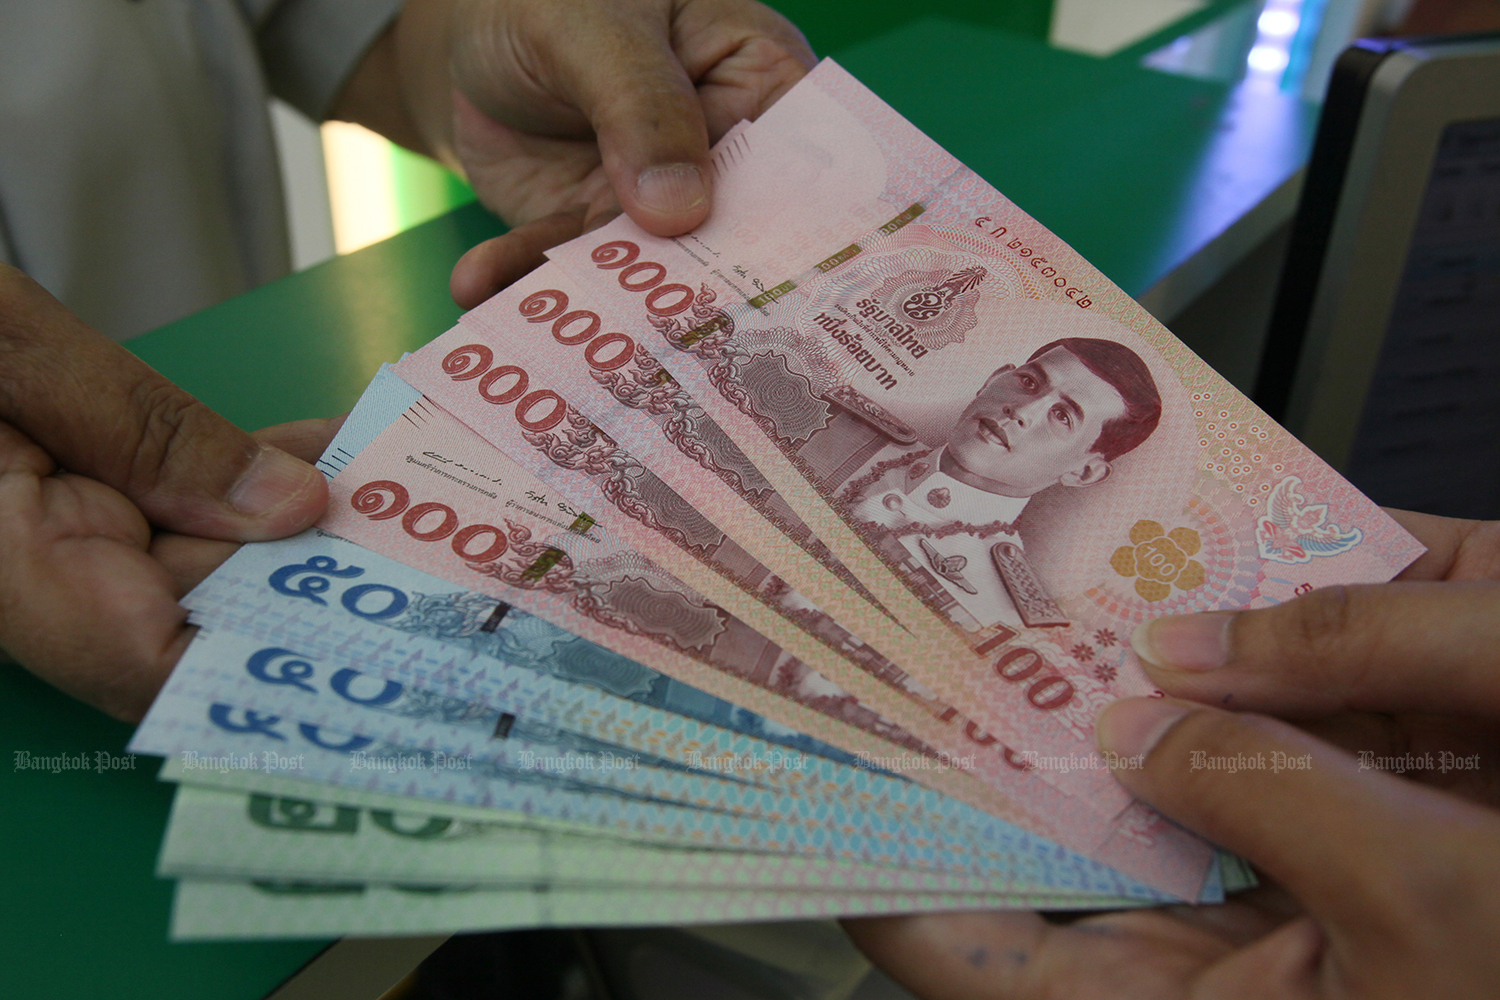 Thailand's effort to revive economic growth with more than 316 billion baht of stimulus faces an obstacle from its surging currency. (Bangkok Post photo)